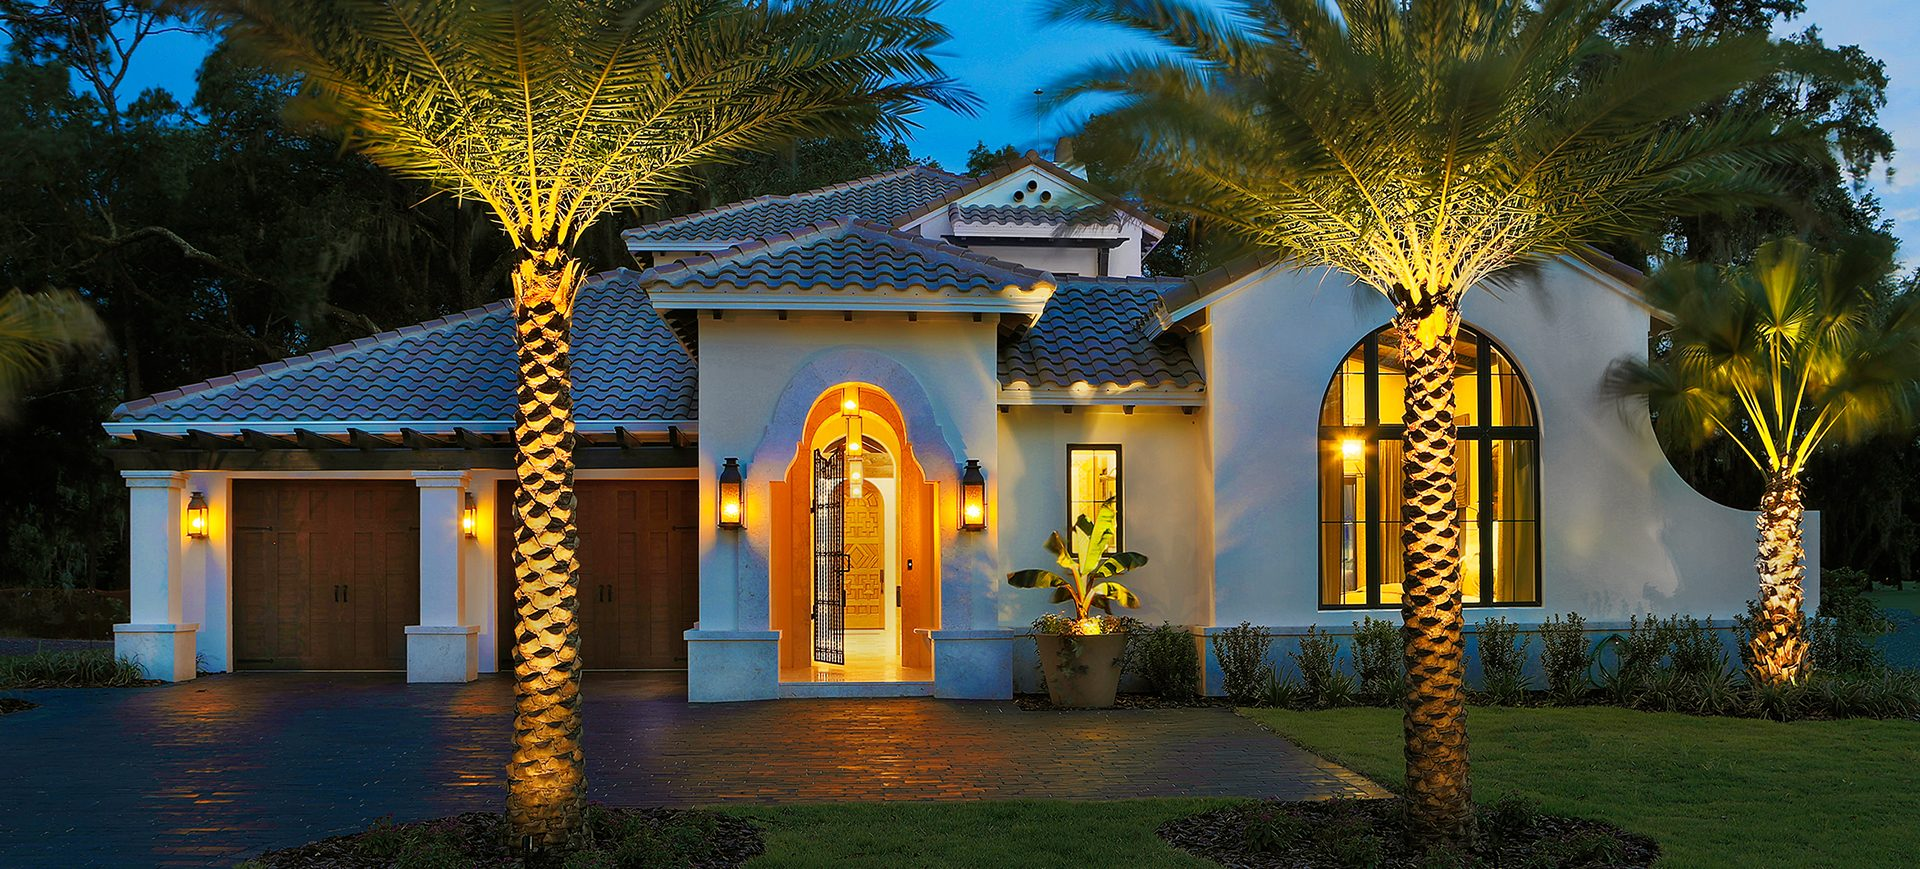 The audrey custom home designed and built by tampa home builders - Tour The Florencia Inspiration Home